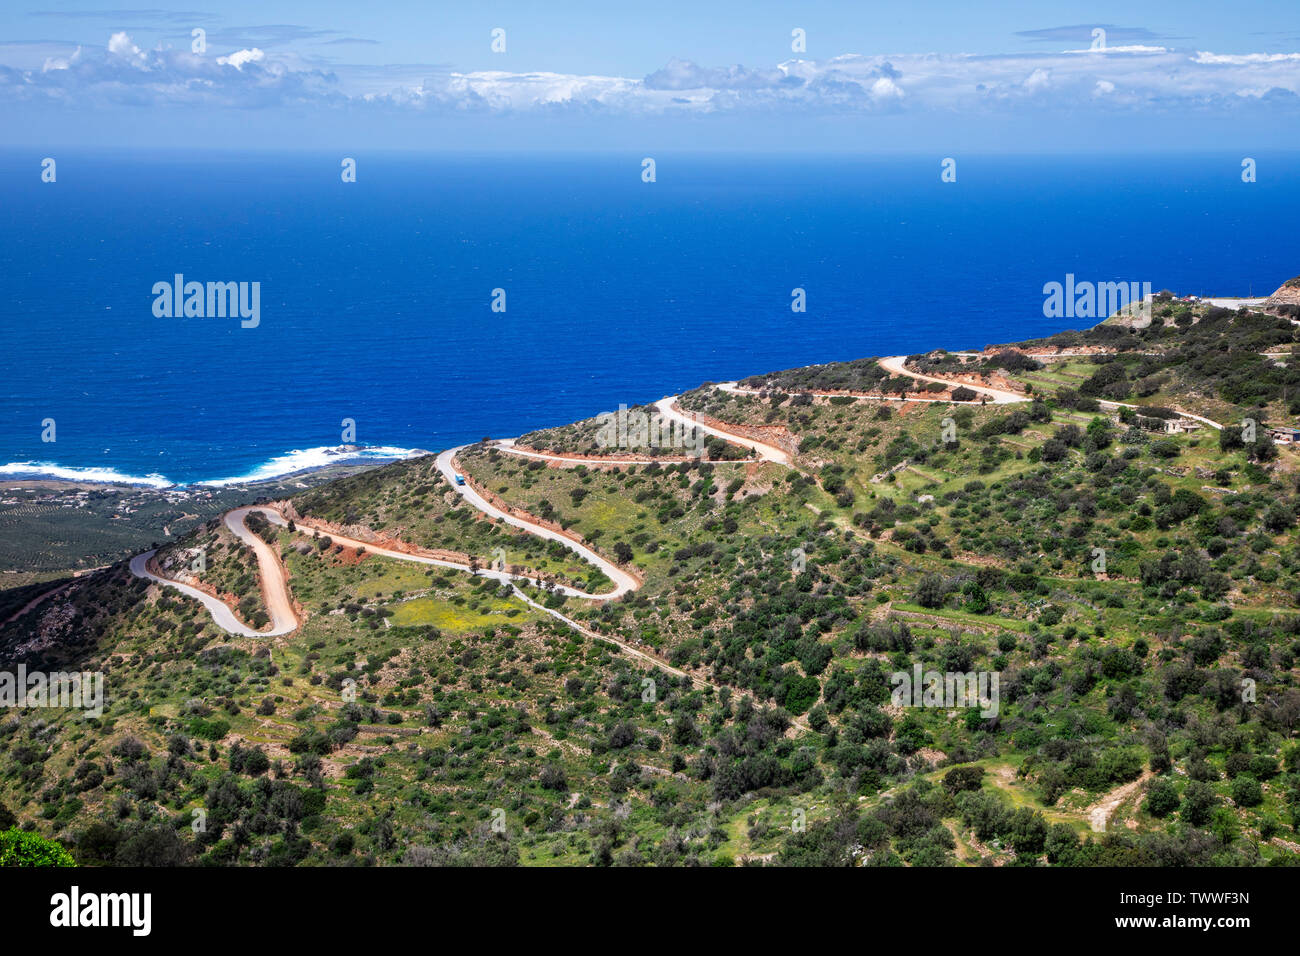 A long twisting road out of the mountains leads to the western coast of Crete, Greece. - Stock Image